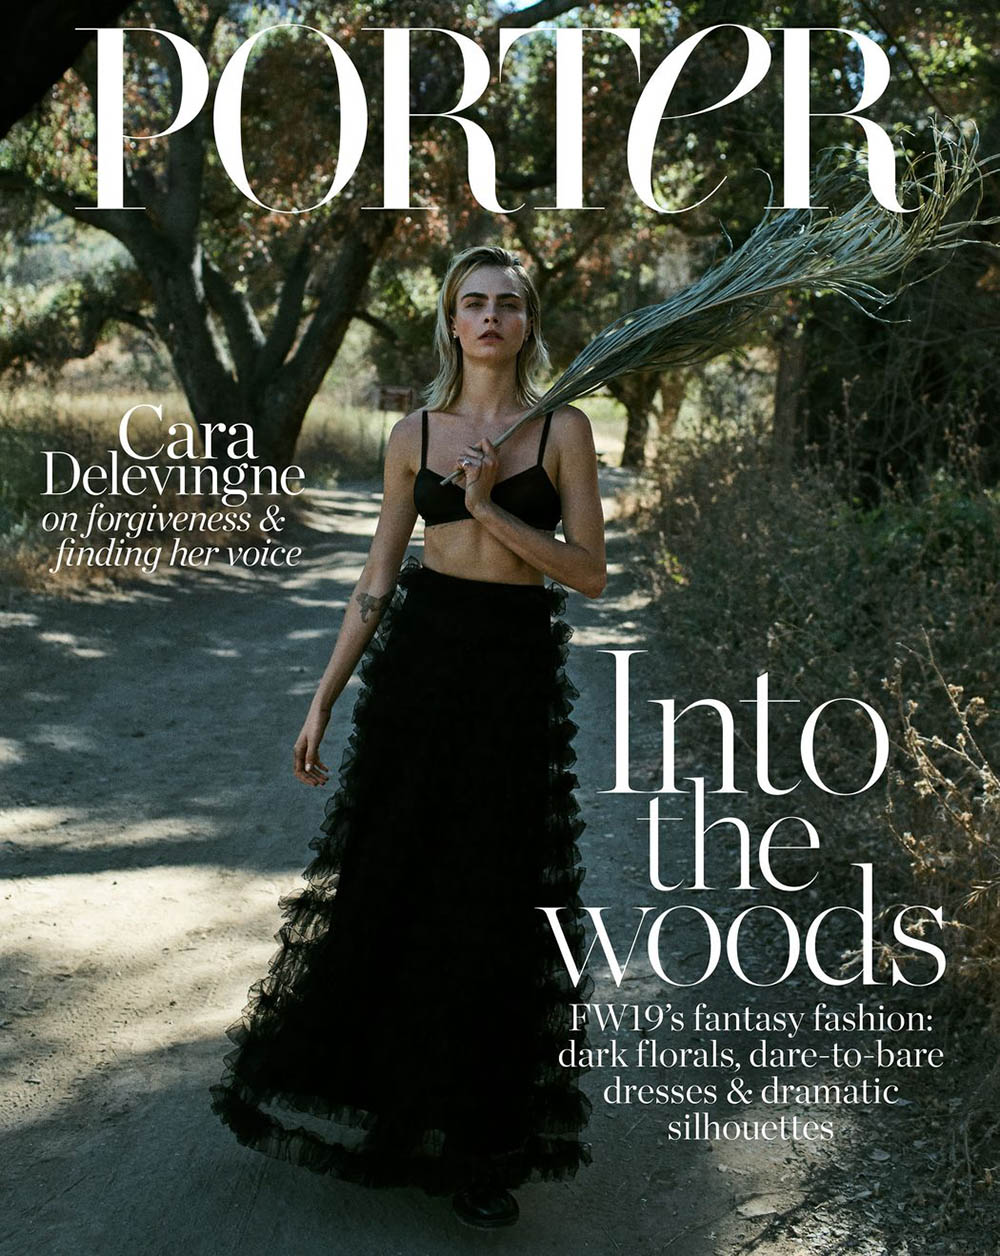 Cara Delevingne covers Porter Edit September 13th, 2019 by Sonia Szóstak